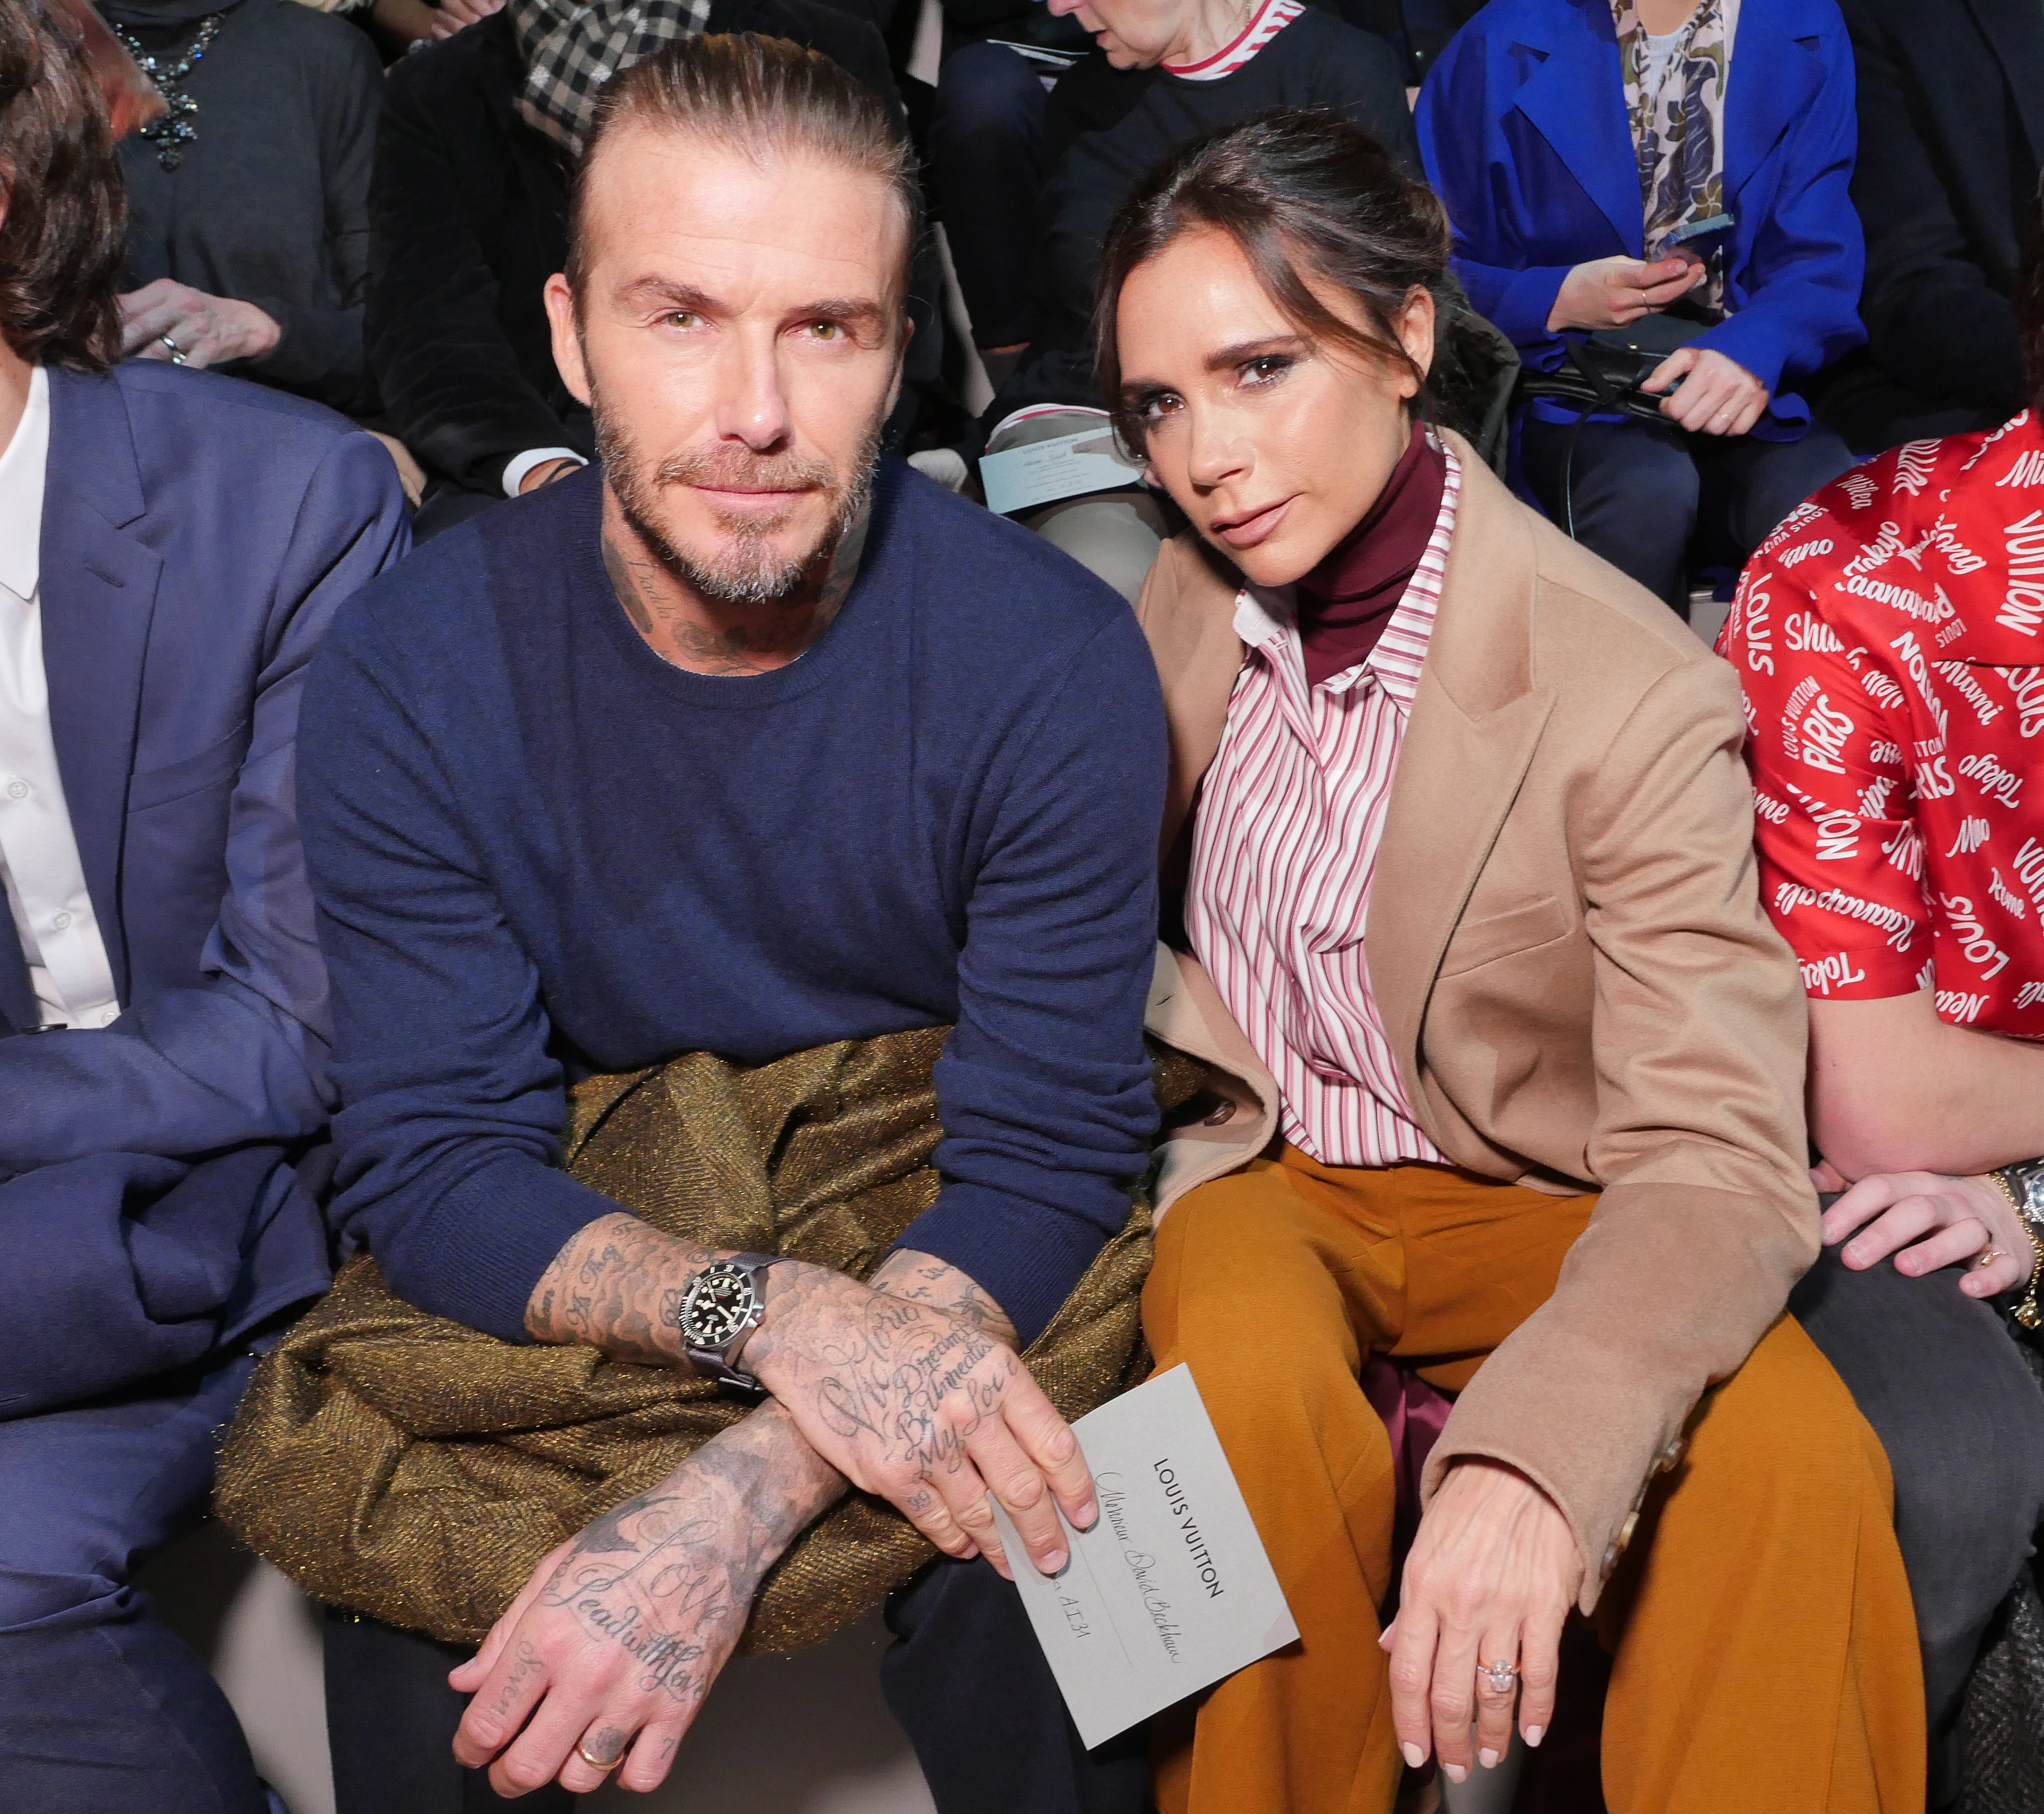 David Beckham and Victoria Beckham sits in the front row of the